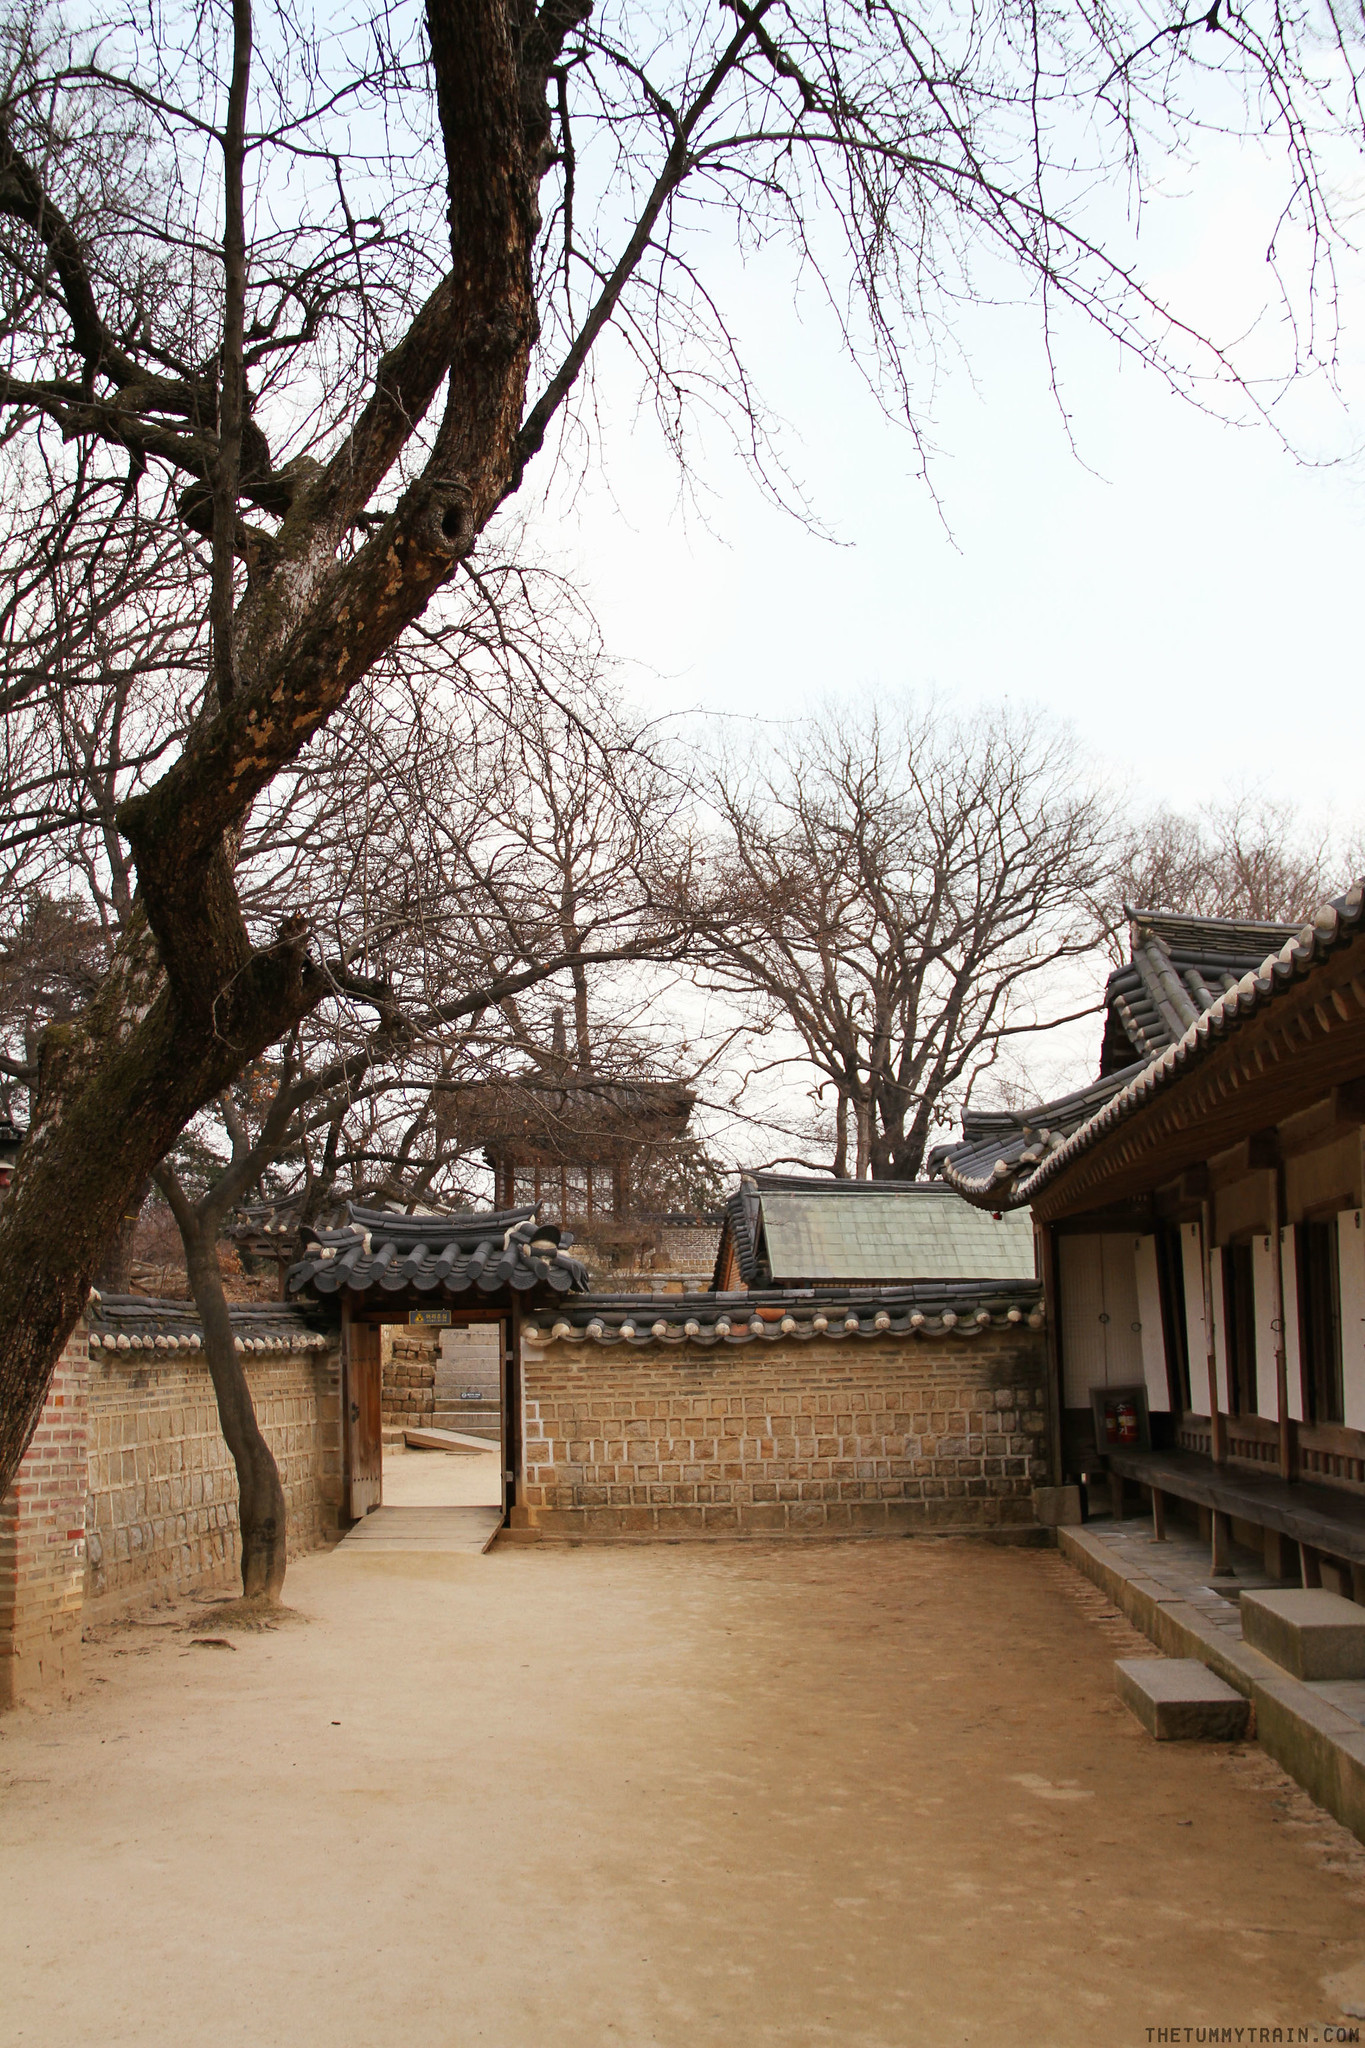 33373093752 8ea26c558b k - Seoul-ful Spring 2016: Greeting the first blooms at Changdeokgung Palace